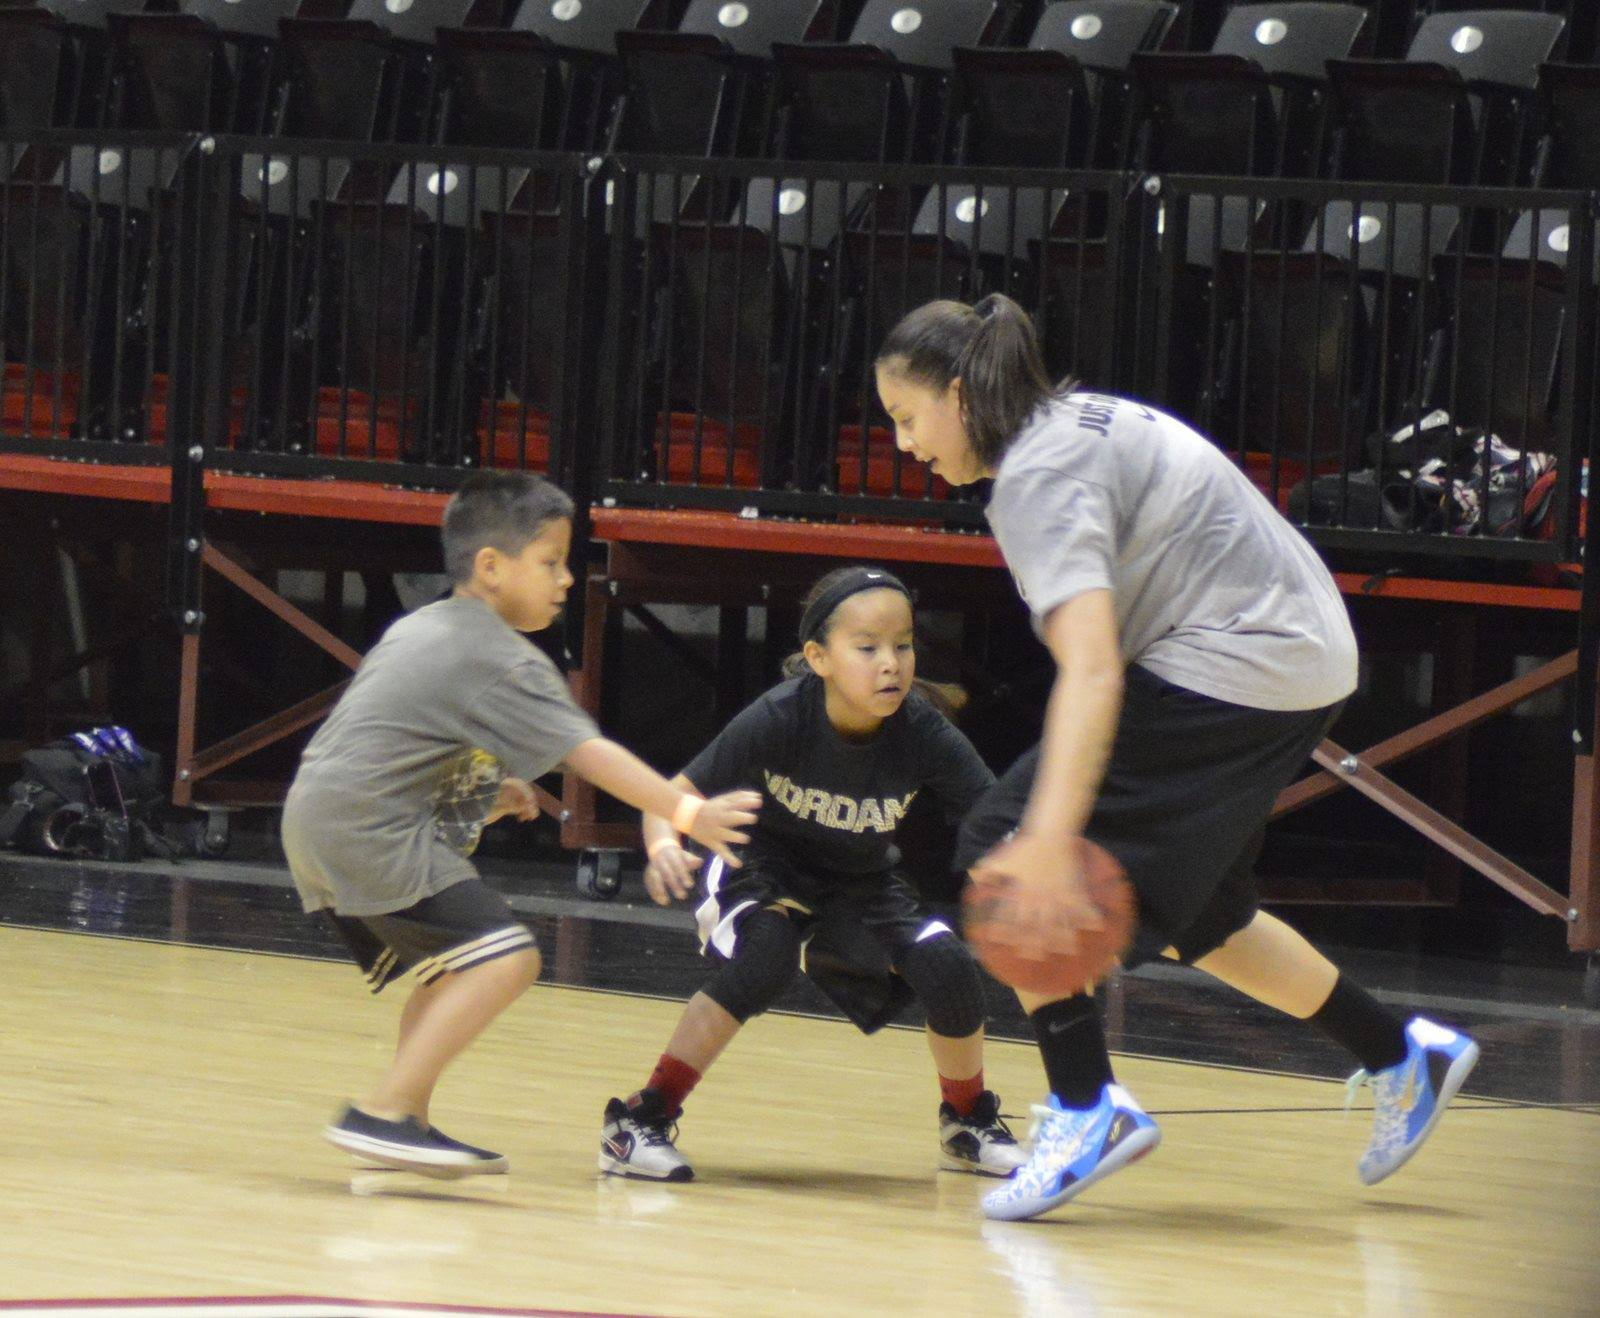 Schimmel Sisters amaze and inspire